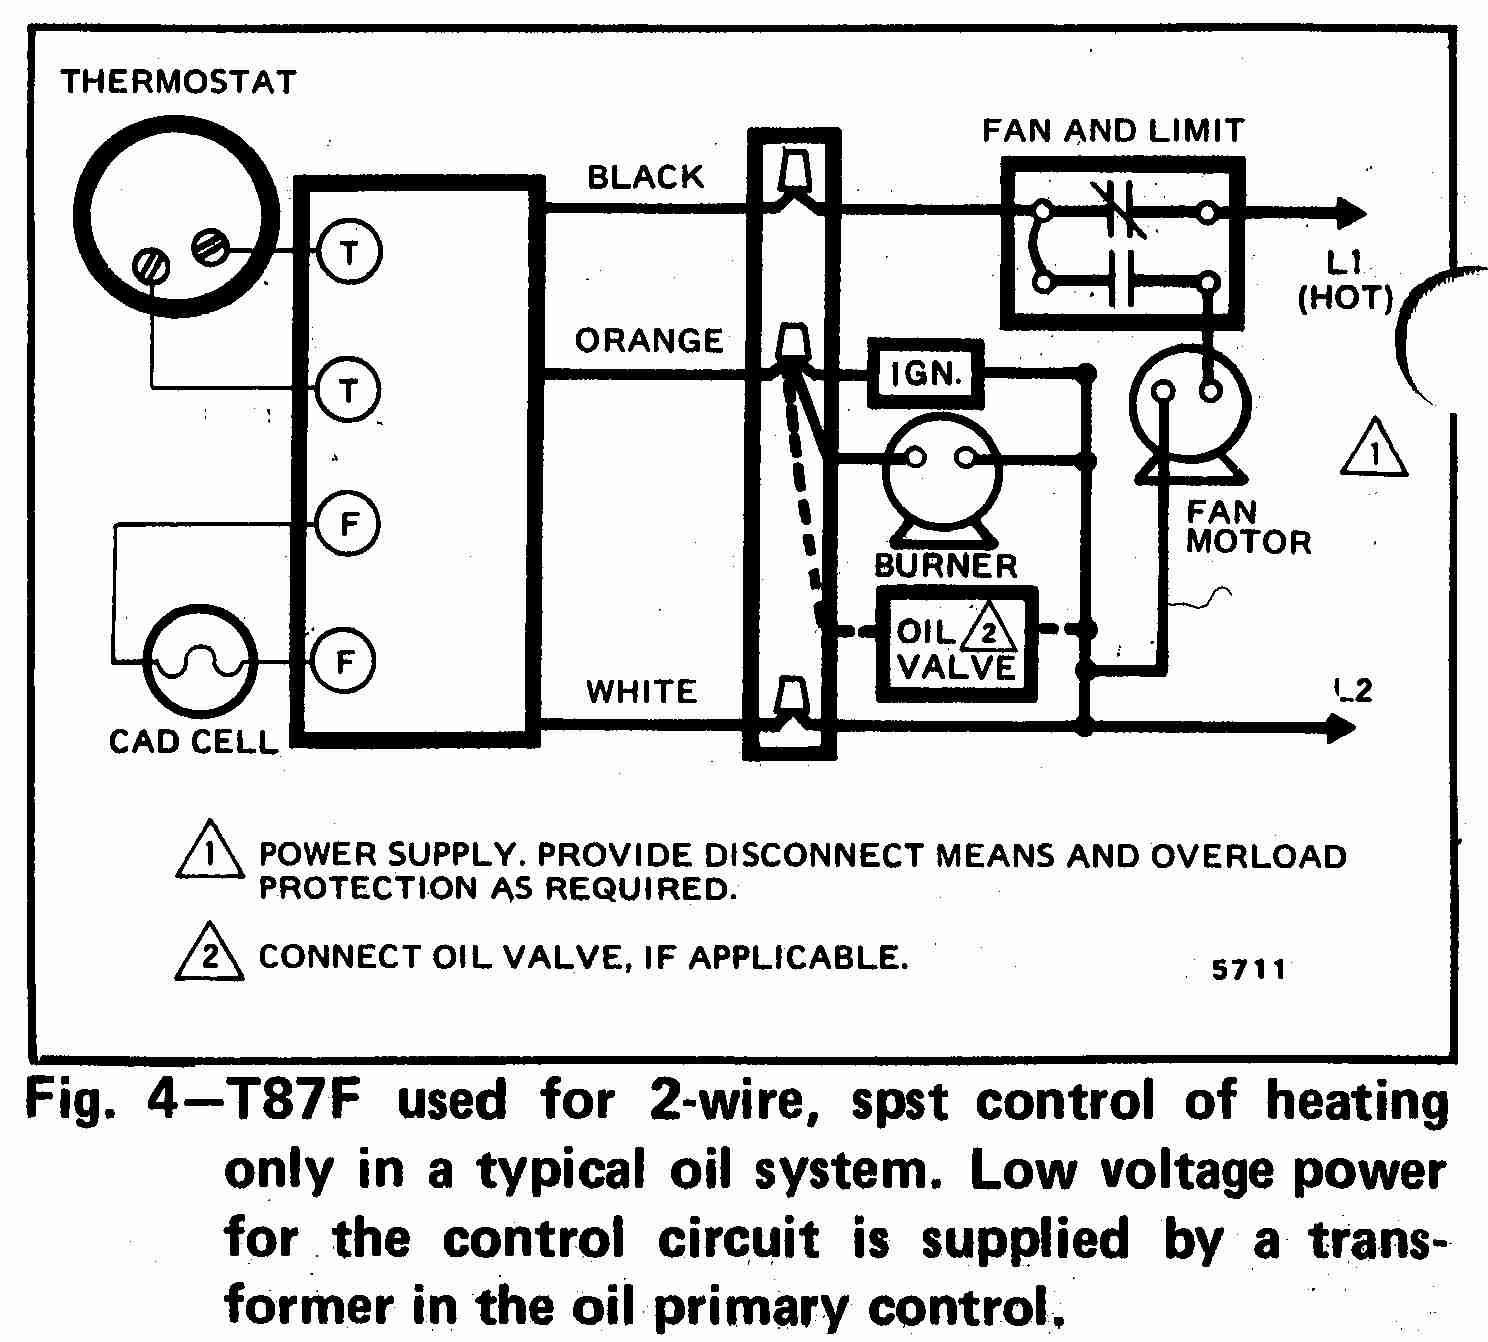 Williams Wall Furnace Wiring Diagram - Ls1 Swap Wiring Diagram -  tomosa35.jeep-wrangler.waystar.fr | Williams Wall Furnace Blower Wiring Diagram |  | Wiring Diagram Resource